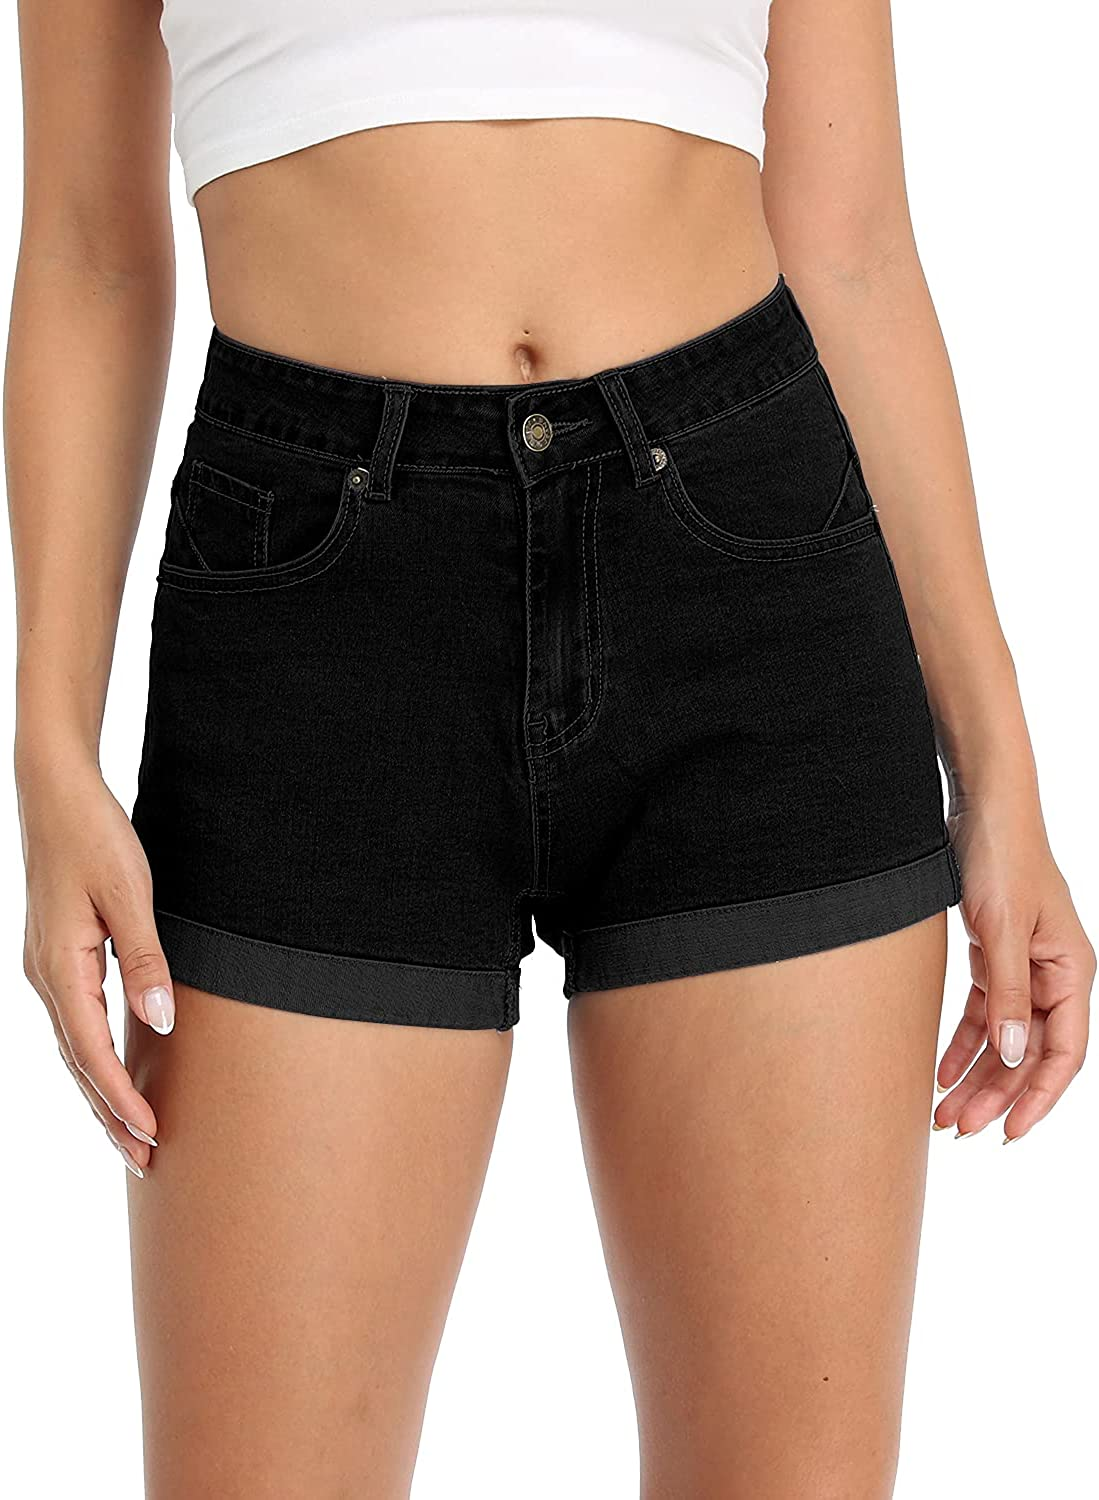 onlypuff Denim Hot Shorts for Women Waisted Summer Omaha Mall Mid Sh Casual Free shipping / New